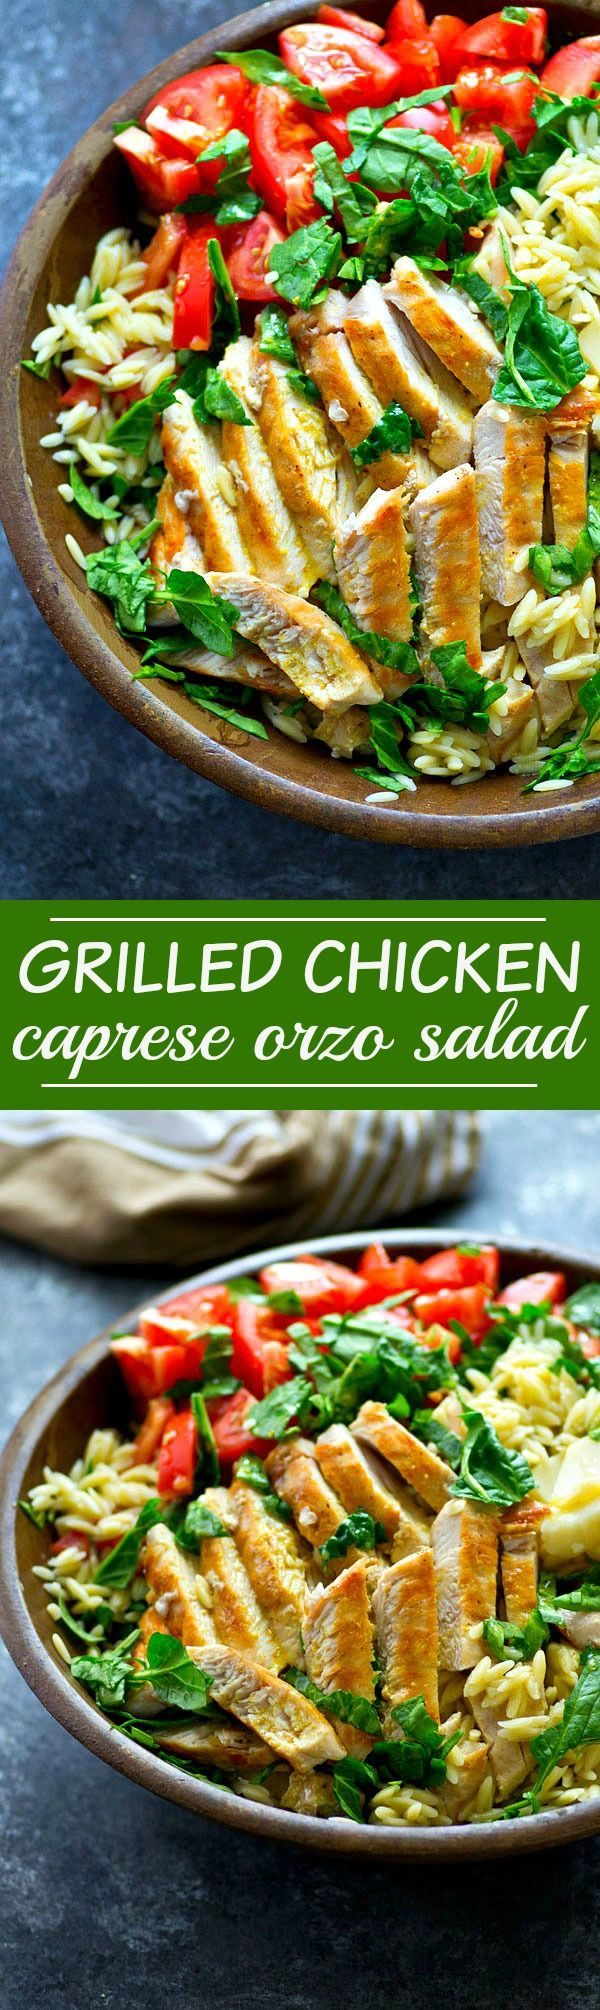 Juicy grilled chicken, tons of fresh tomatoes, mozzarella, and basil make this caprese orzo salad SO flavorful and the easiest summer salad ever!